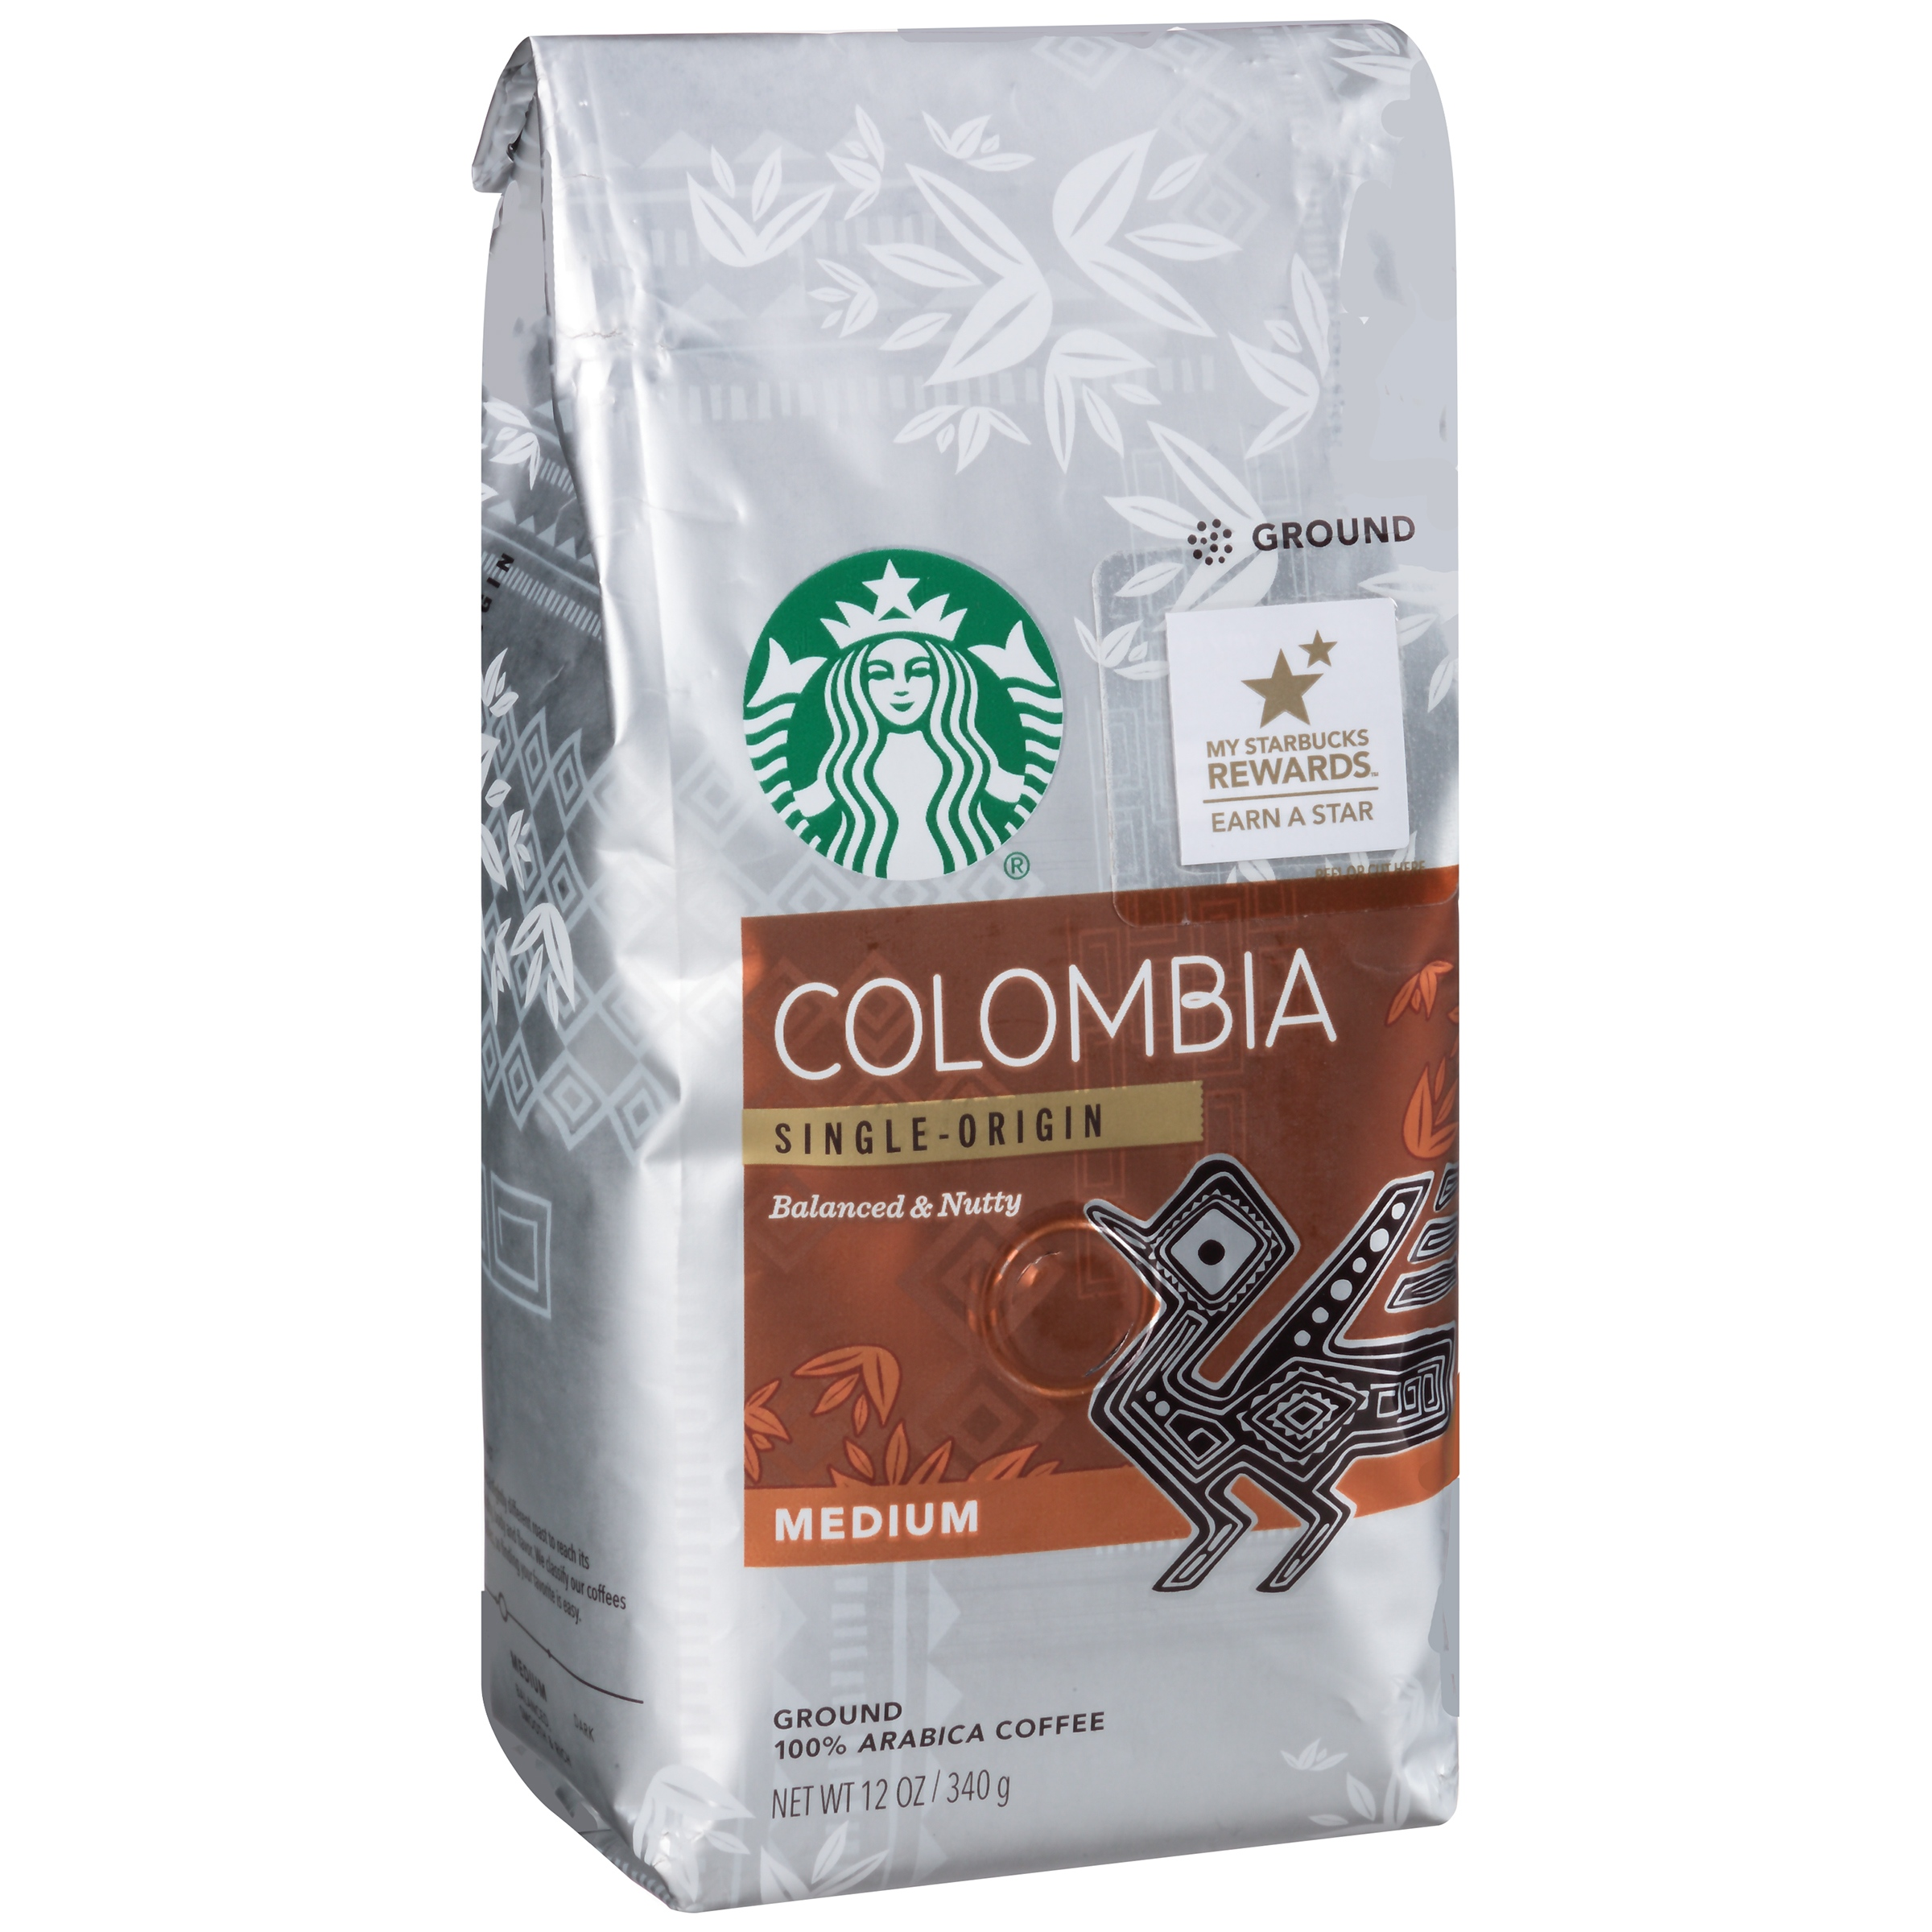 Starbucks Colombia Ground Coffee, 12 oz